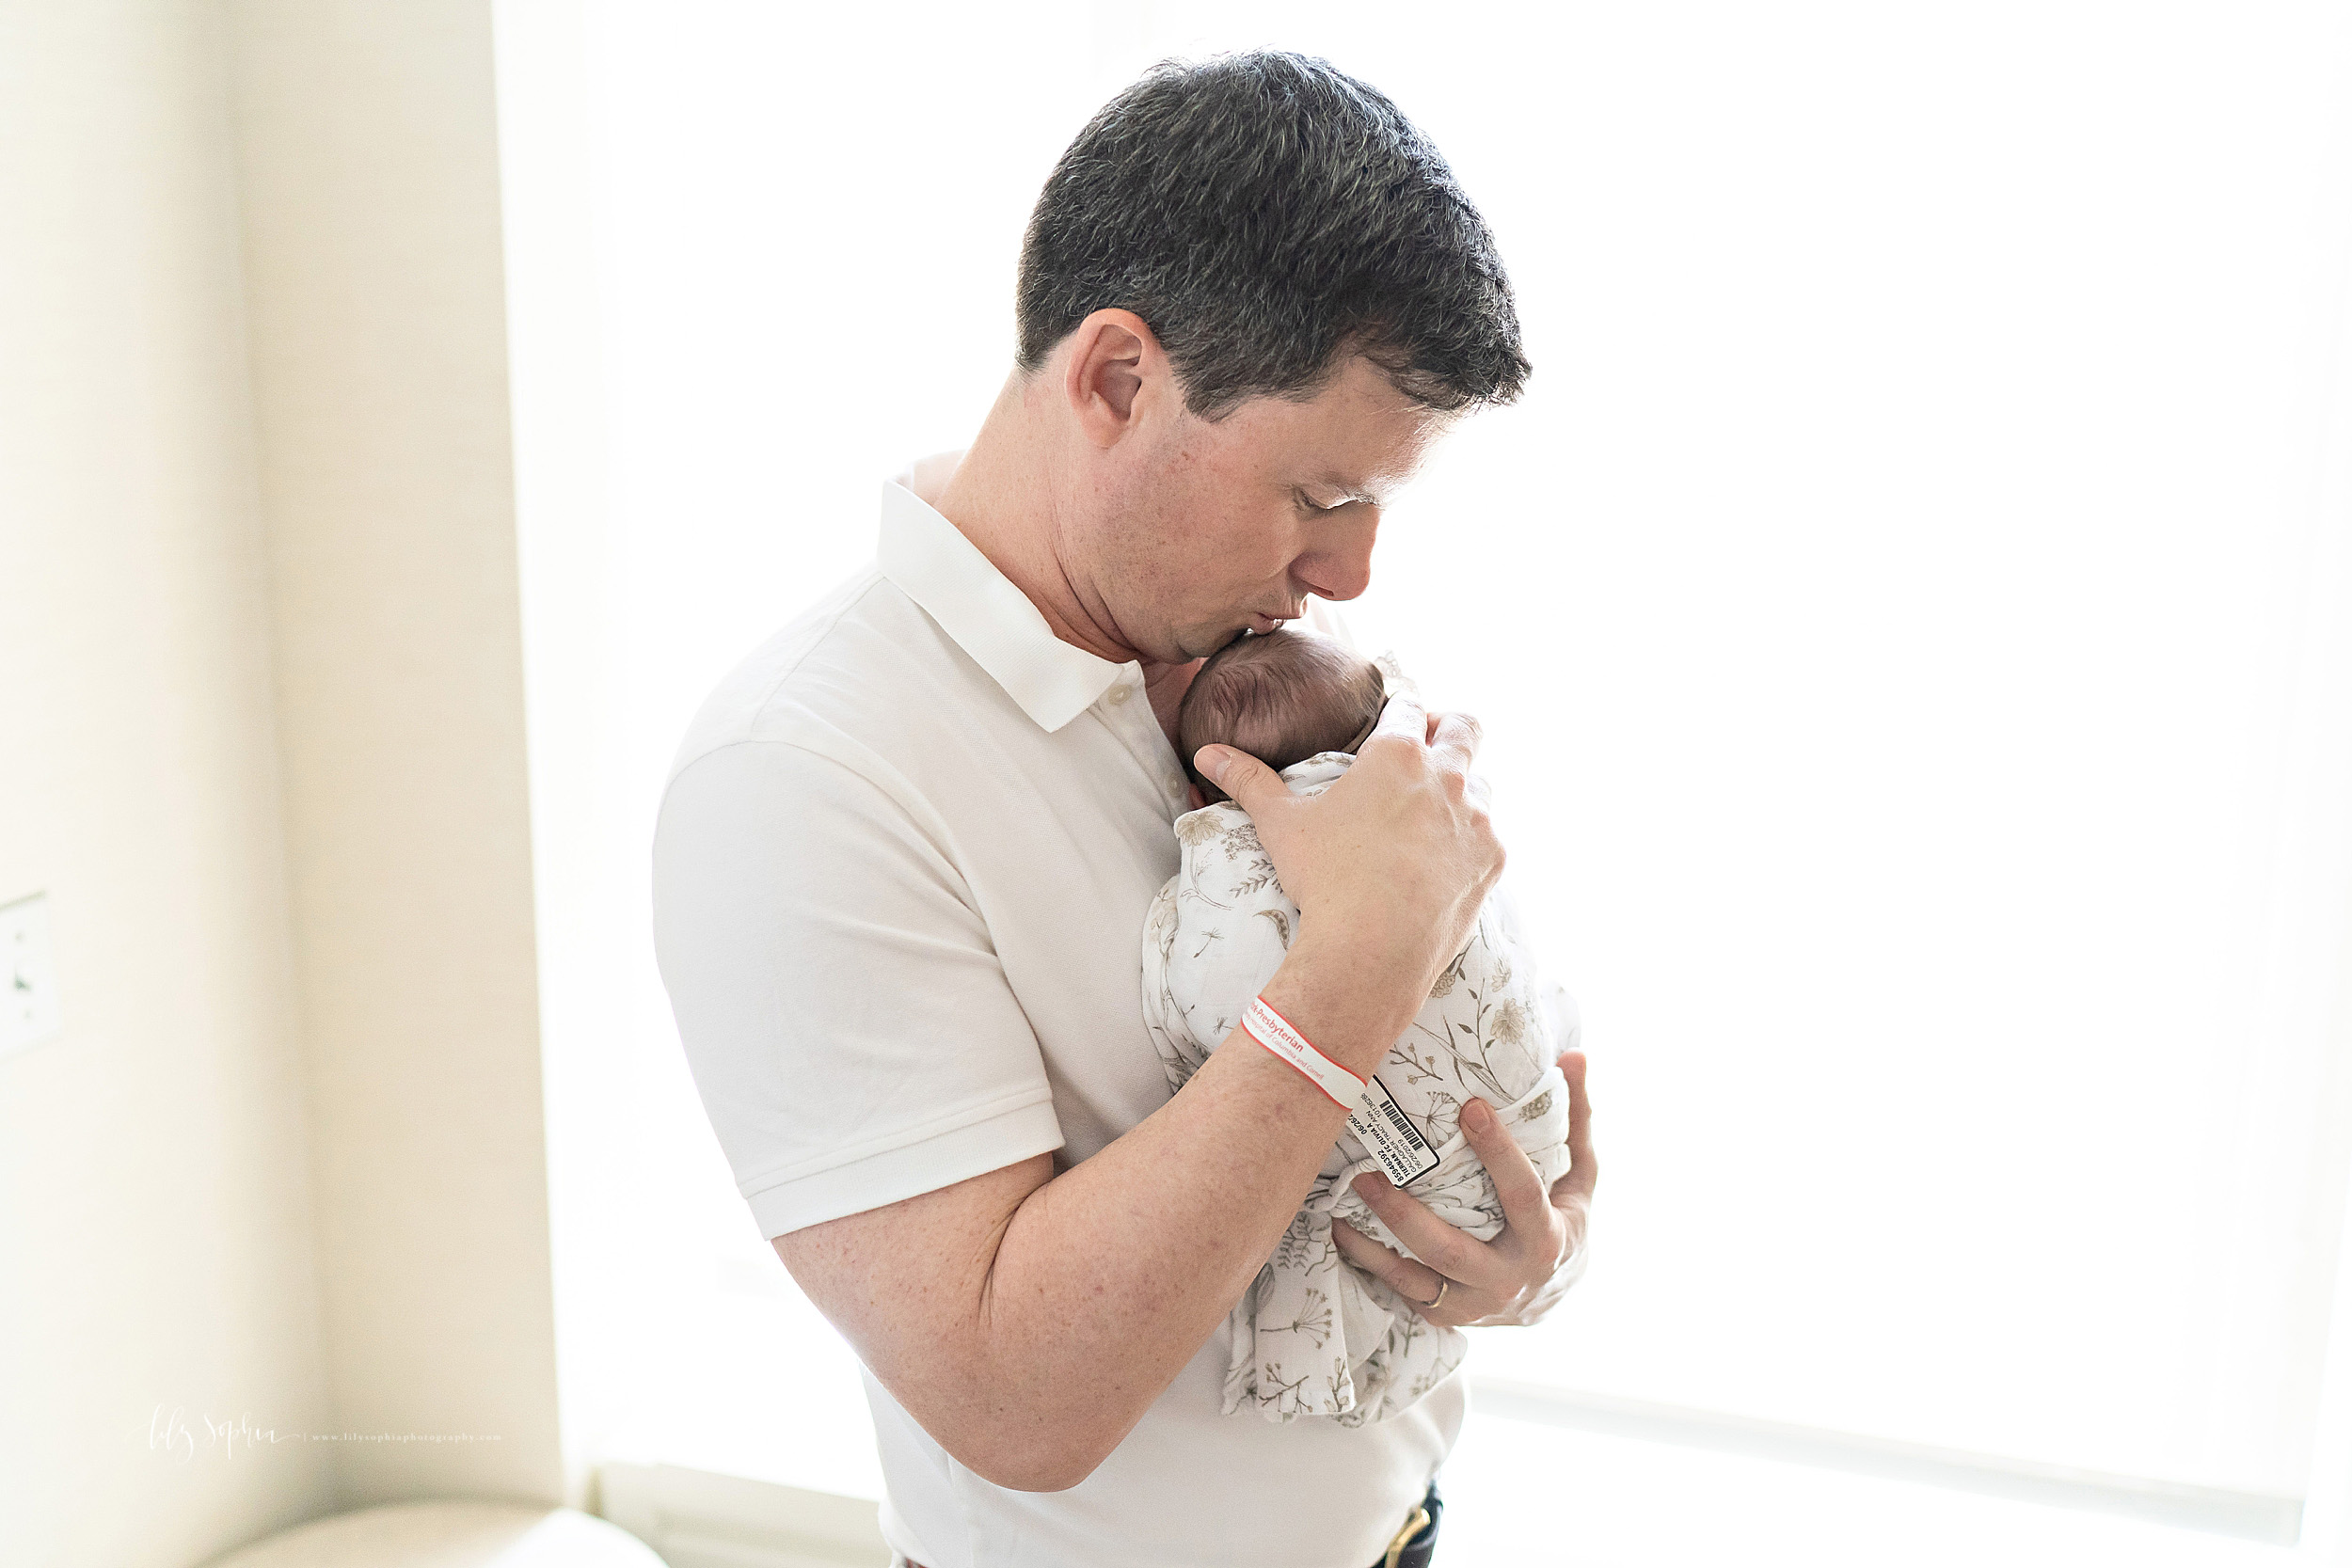 Photo of a dad carefully embracing his newborn daughter as he stands with her in natural light in the hospital room in Lenox Hill, New York shortly after her birth.